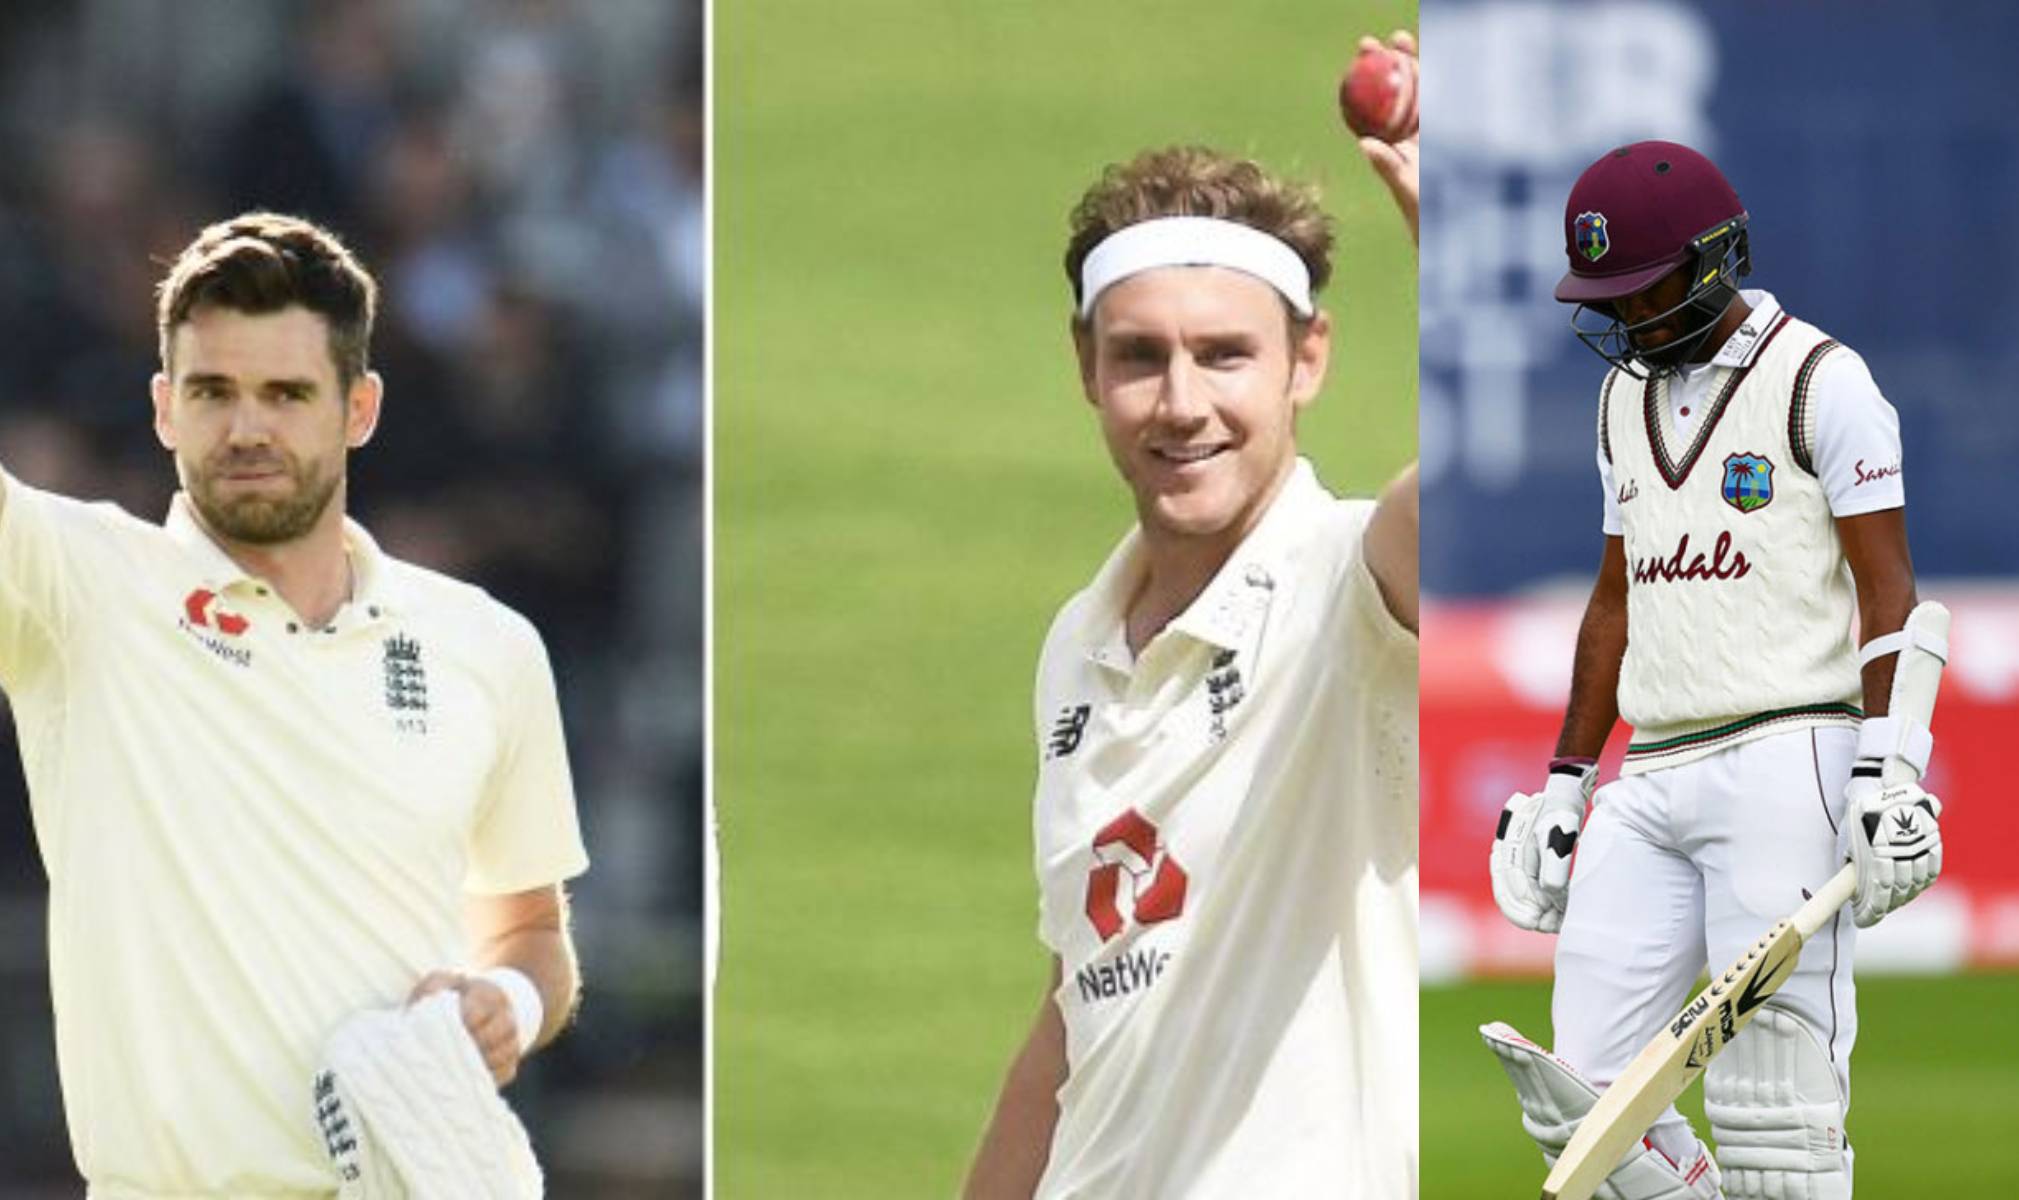 Kraigg Brathwaite is the 500th Test victim of both Anderson and Broad